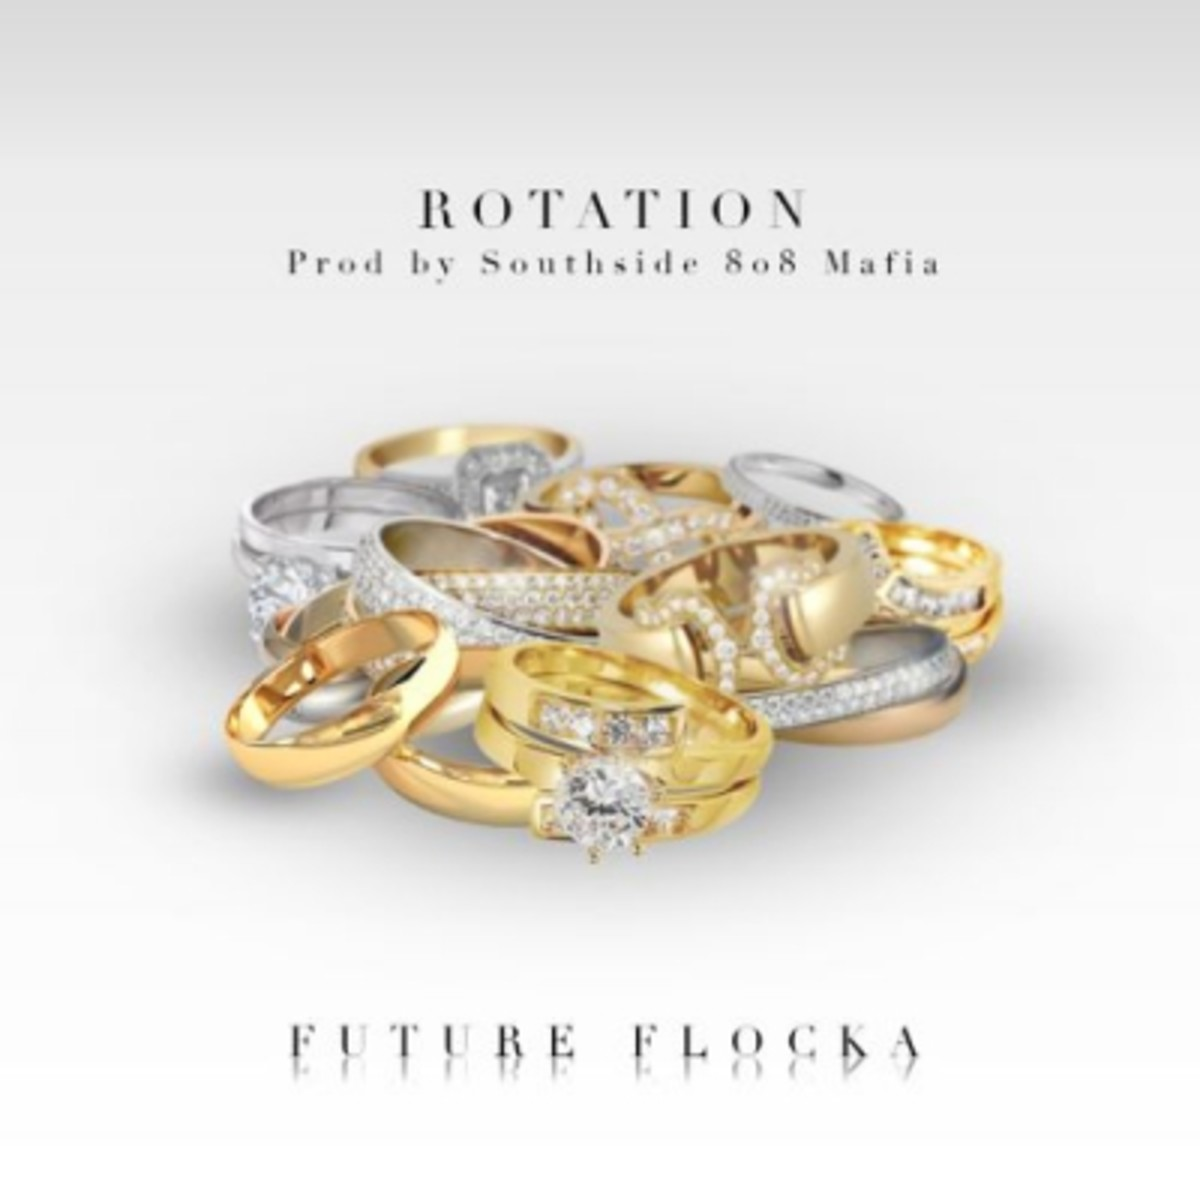 future-flocka-rotation.jpg